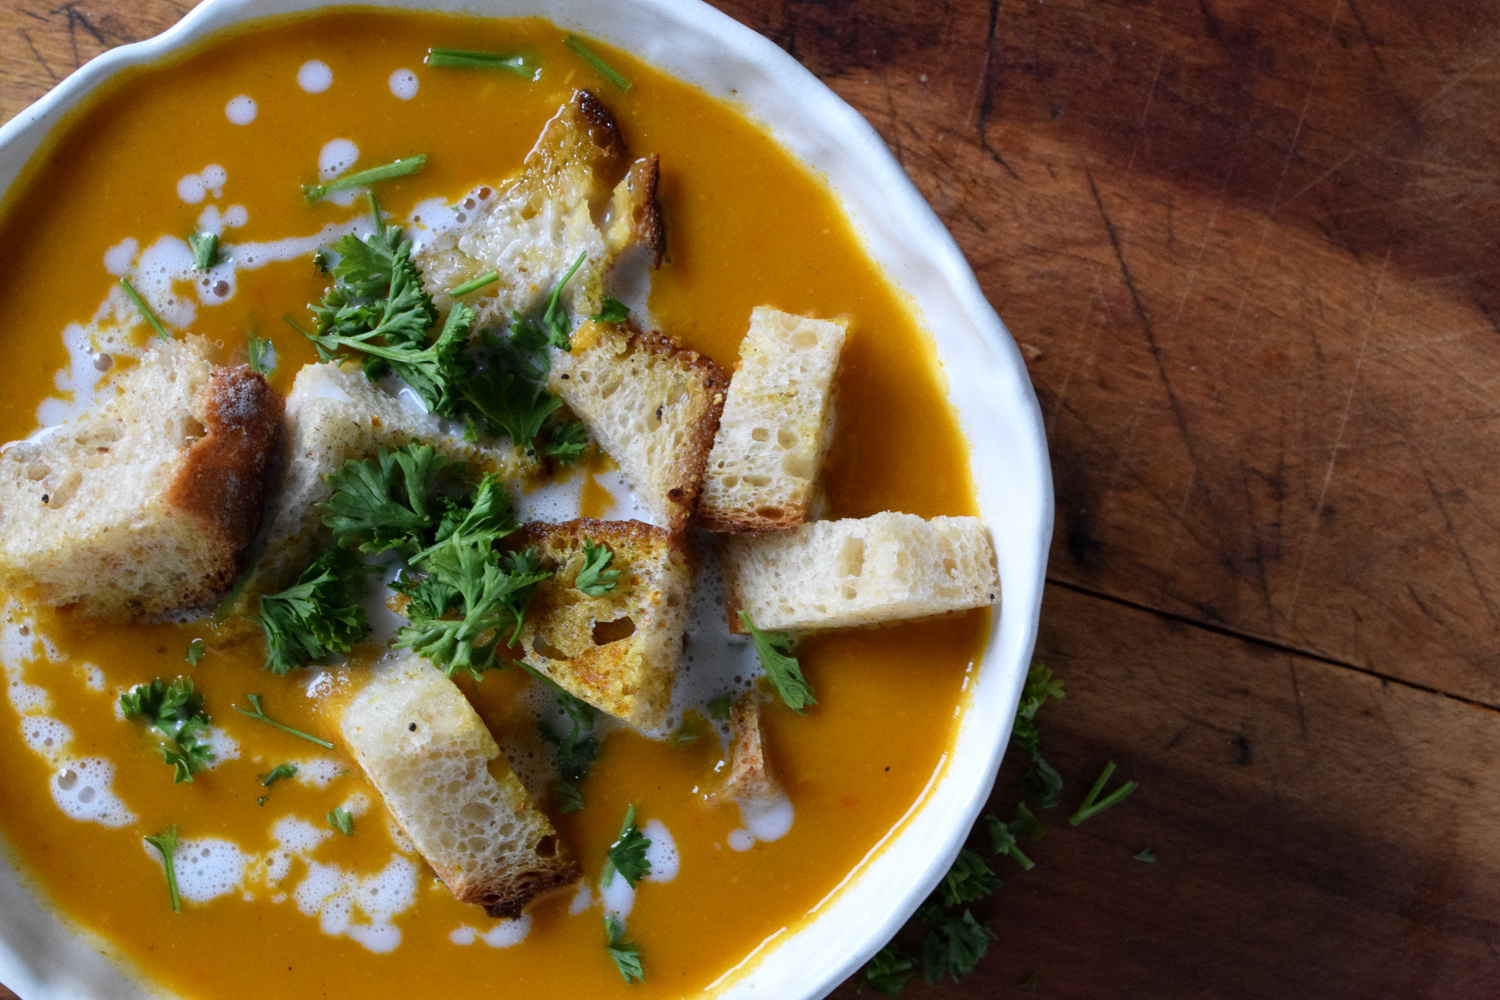 sweet carrot ginger soup with vegetables from local roots csa by sustaining life